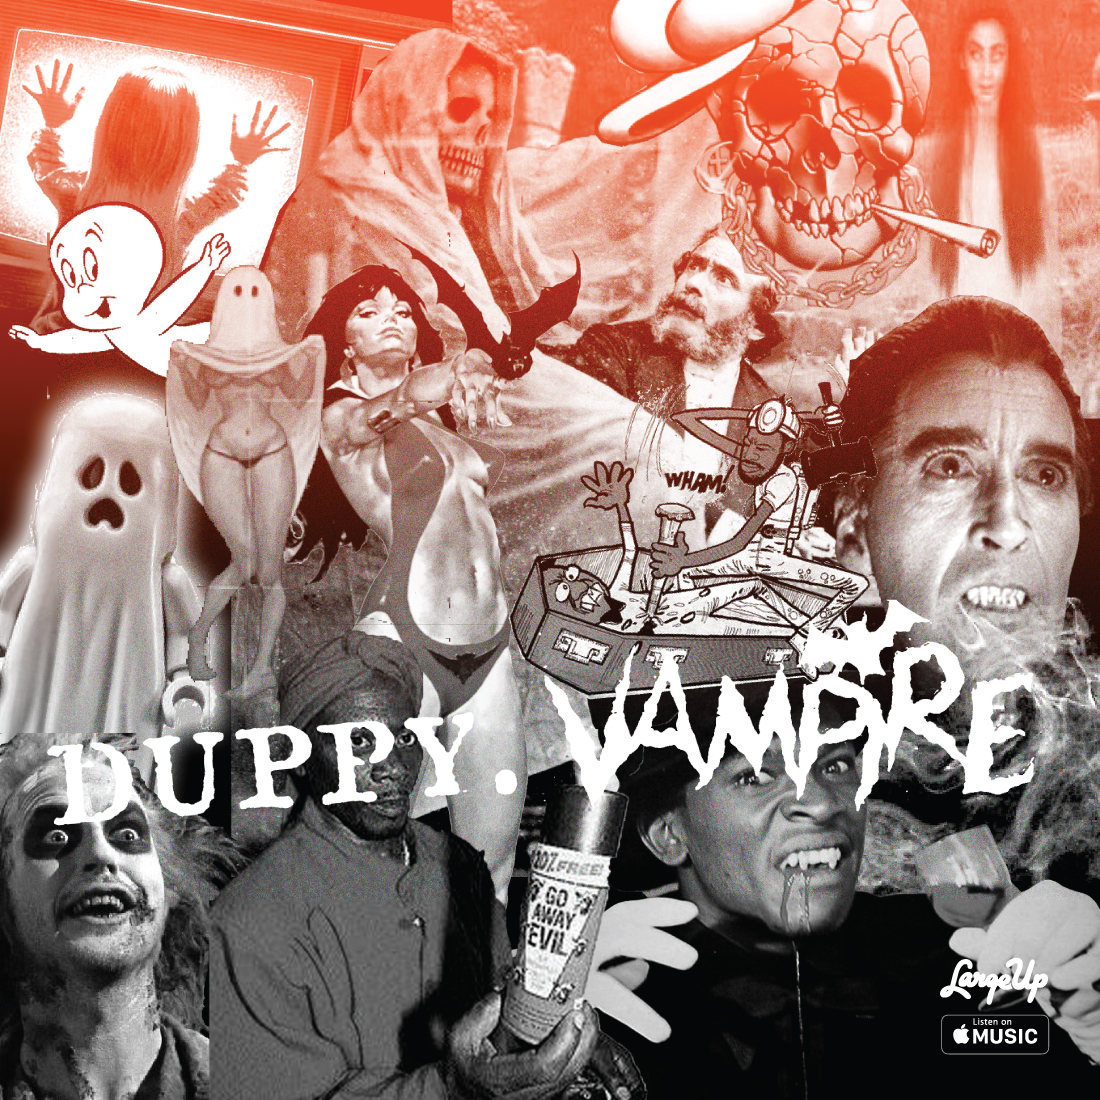 duppy-vampire-haunted-reggae-playlist